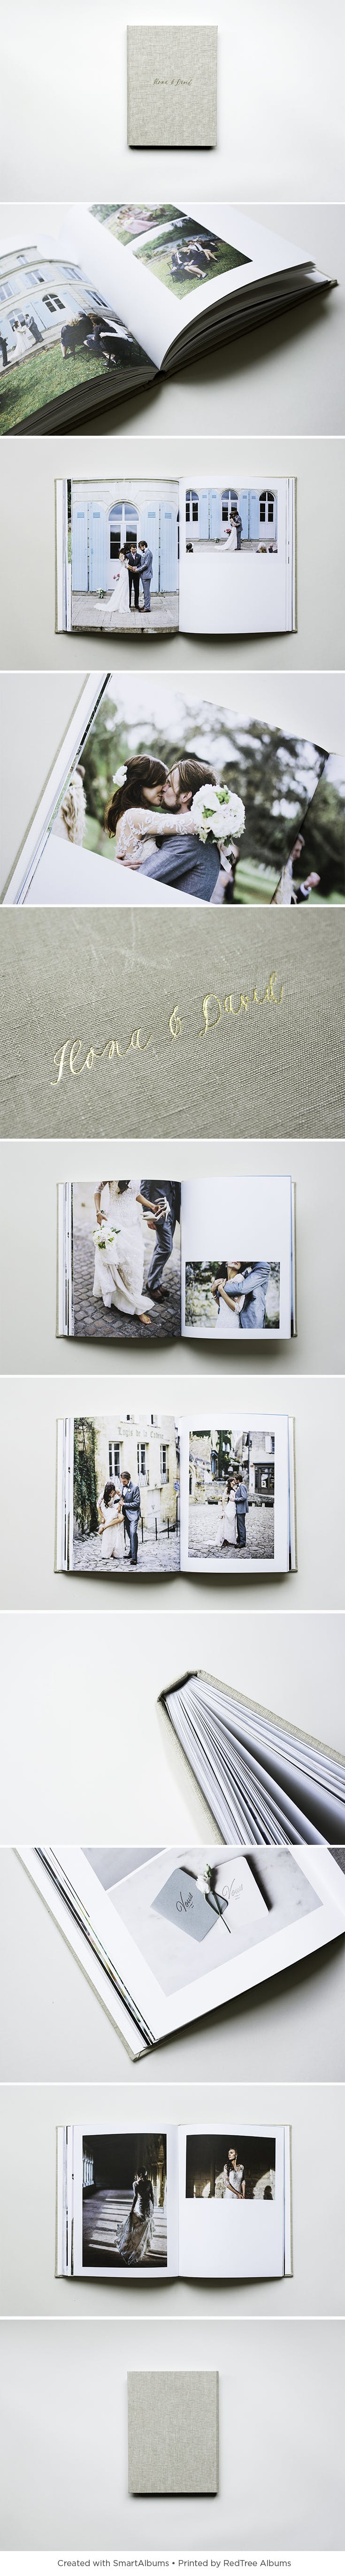 RedTree Albums hardcover book